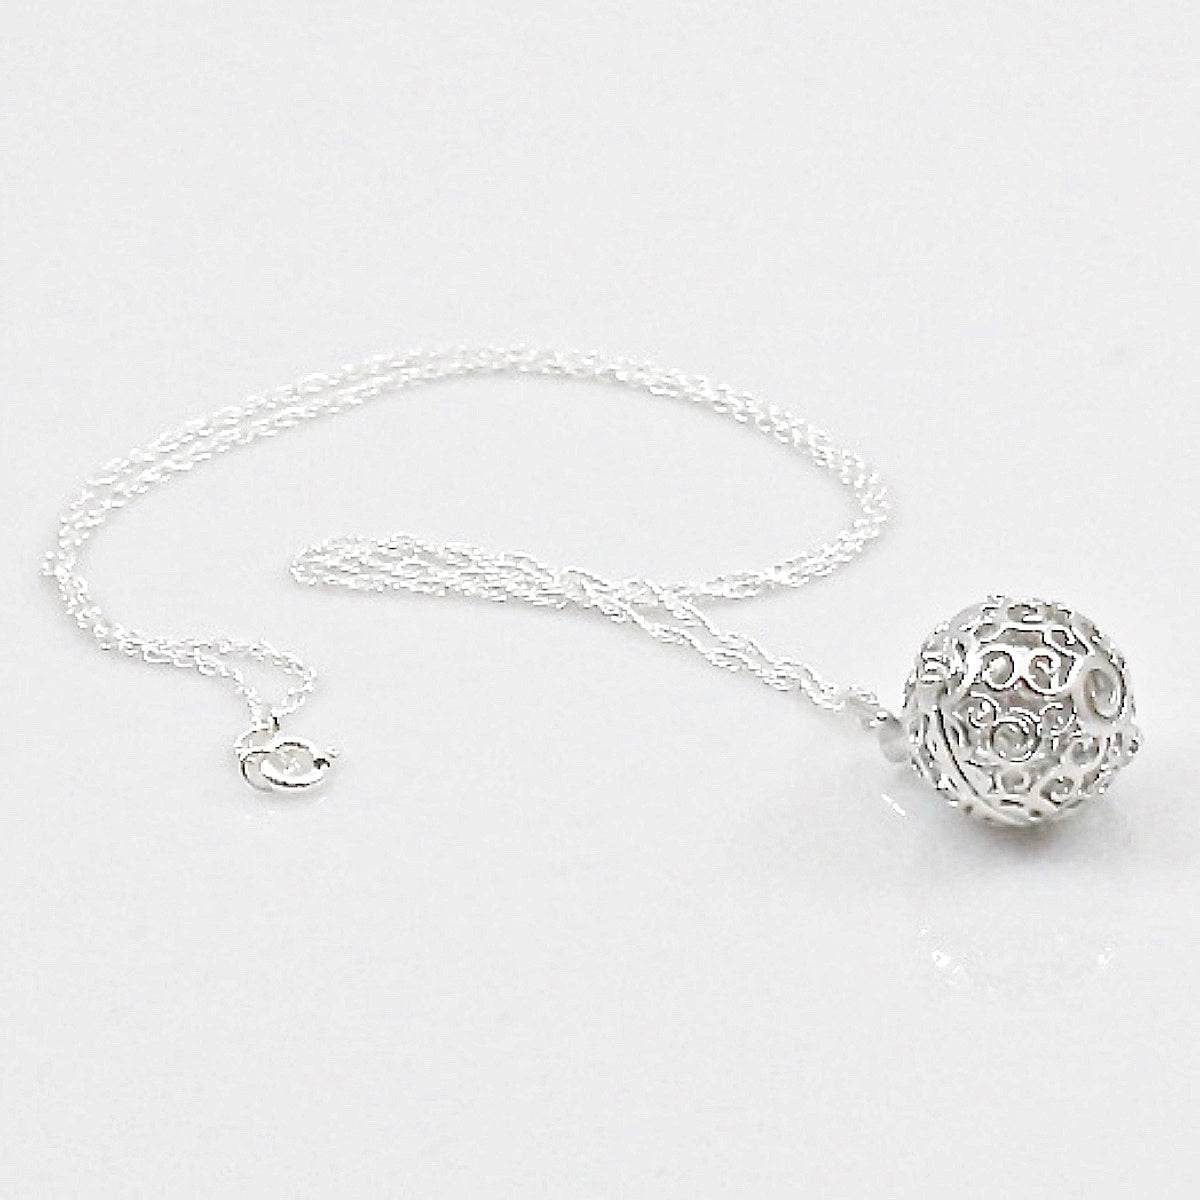 Essential Oils Diffuser Swirl Design Pendant Necklace with Sterling Silver Chain